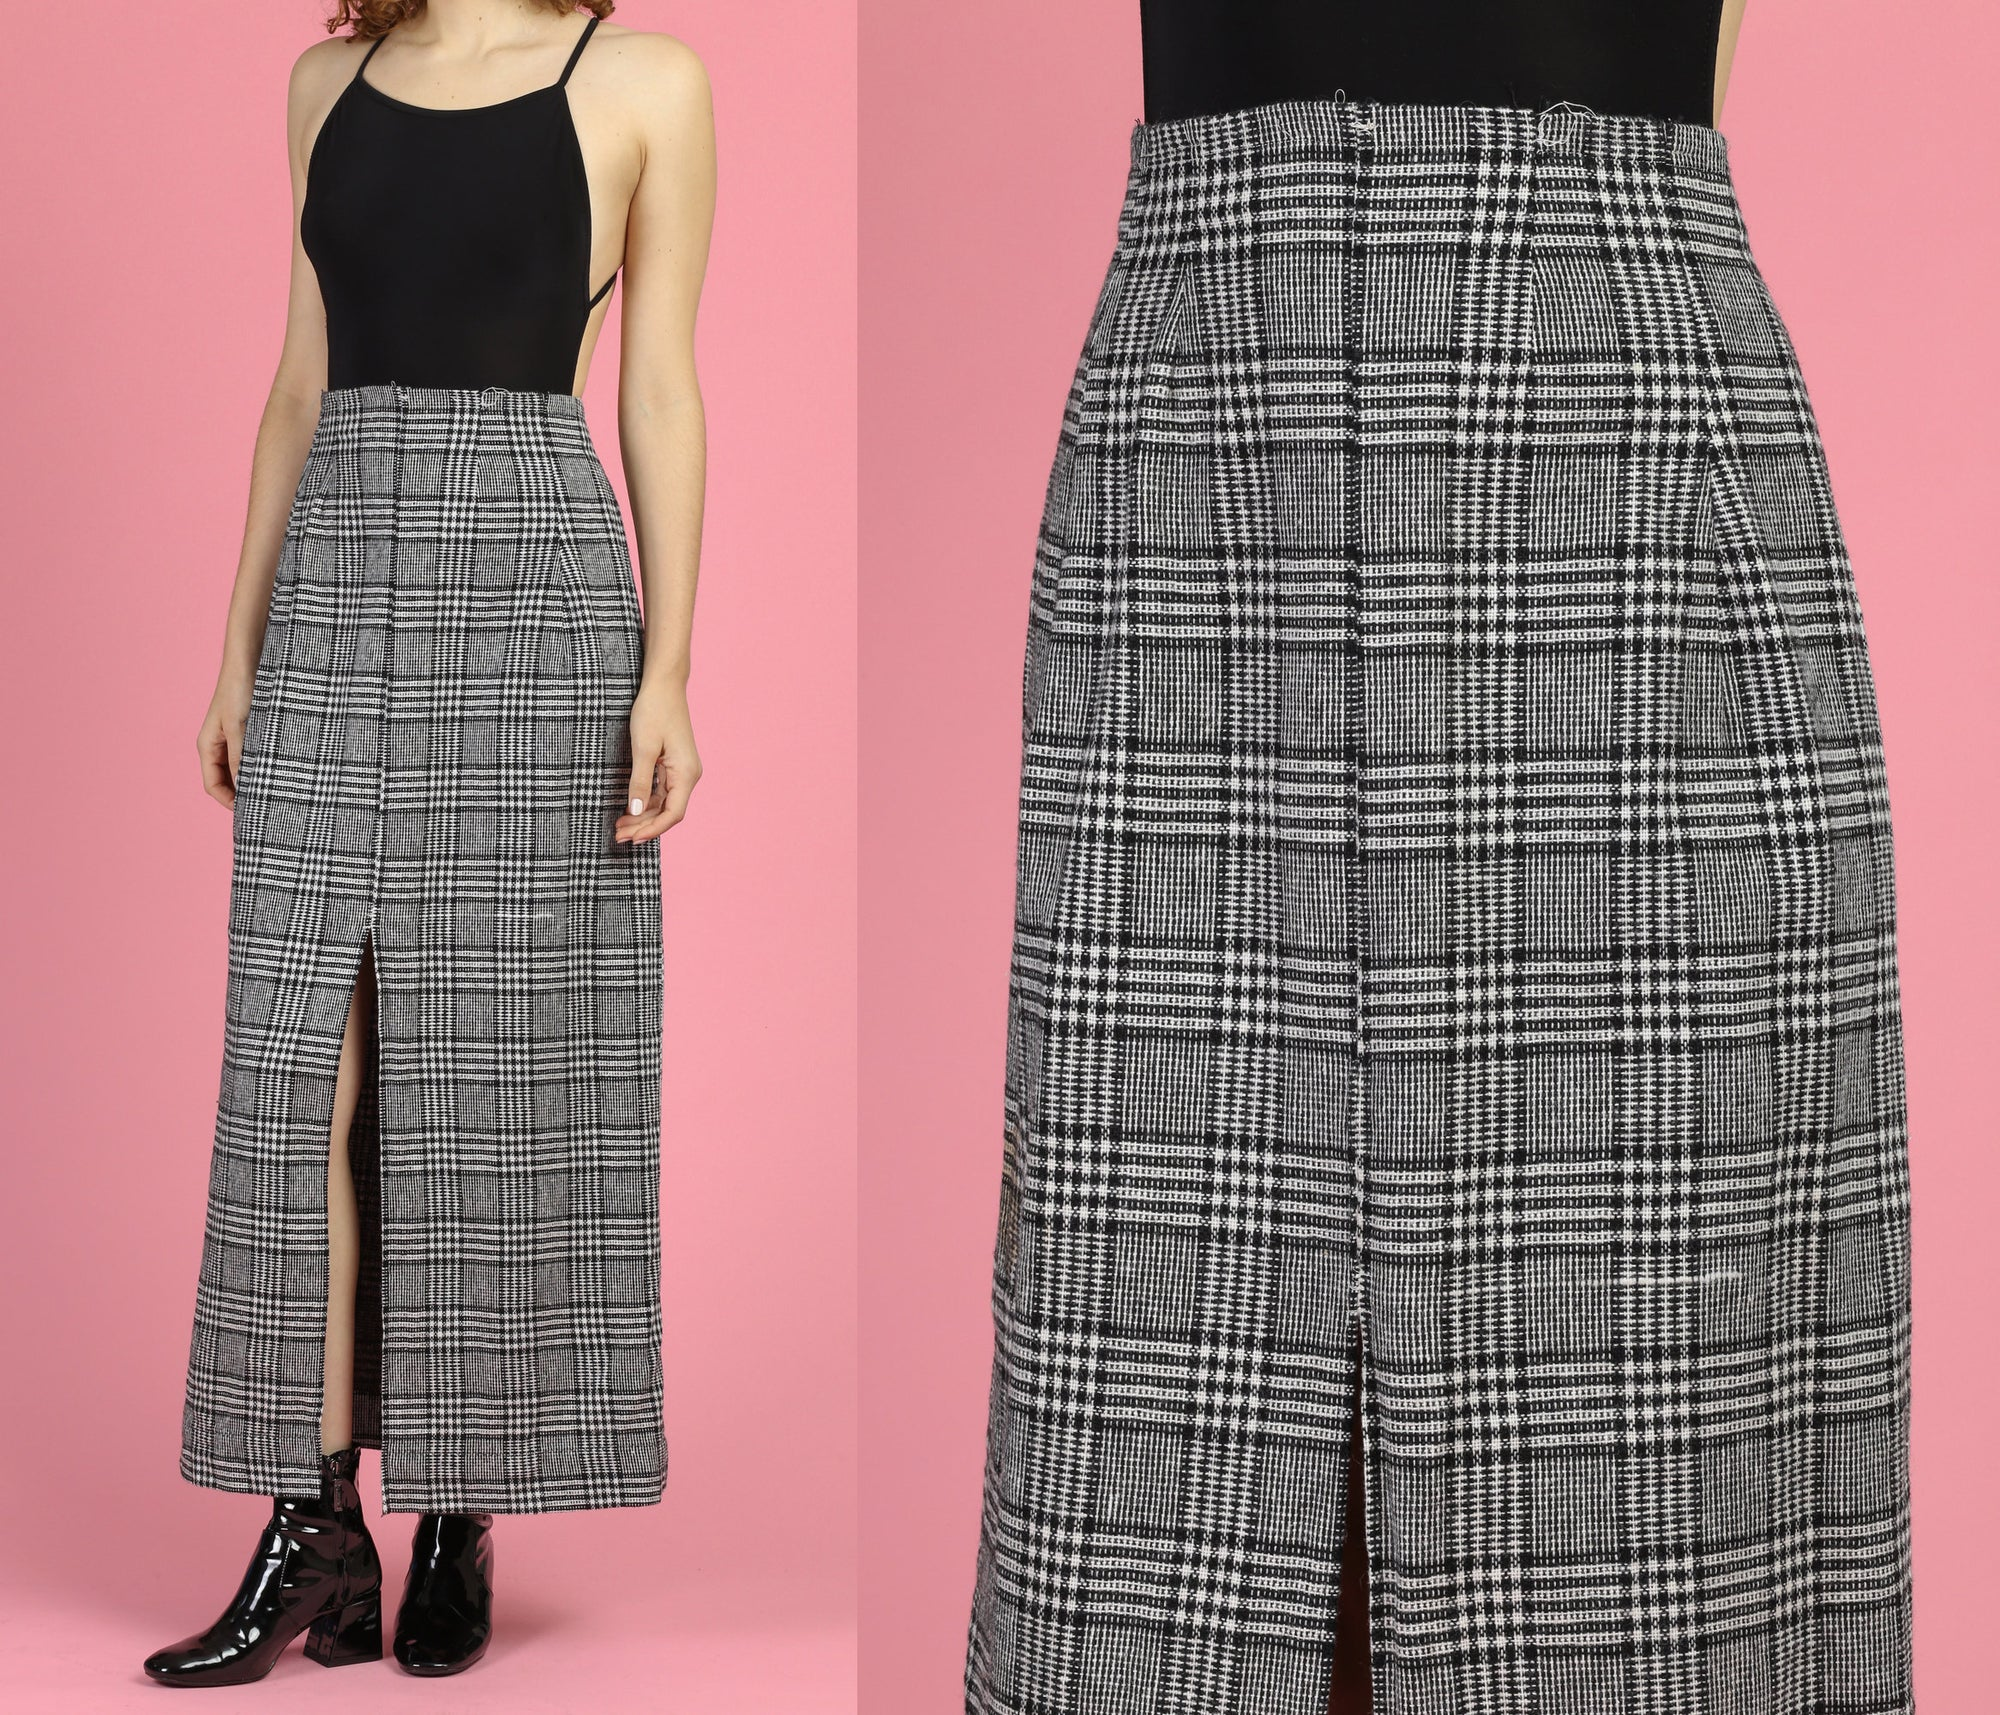 1960s Black & White Plaid Maxi Skirt - Small